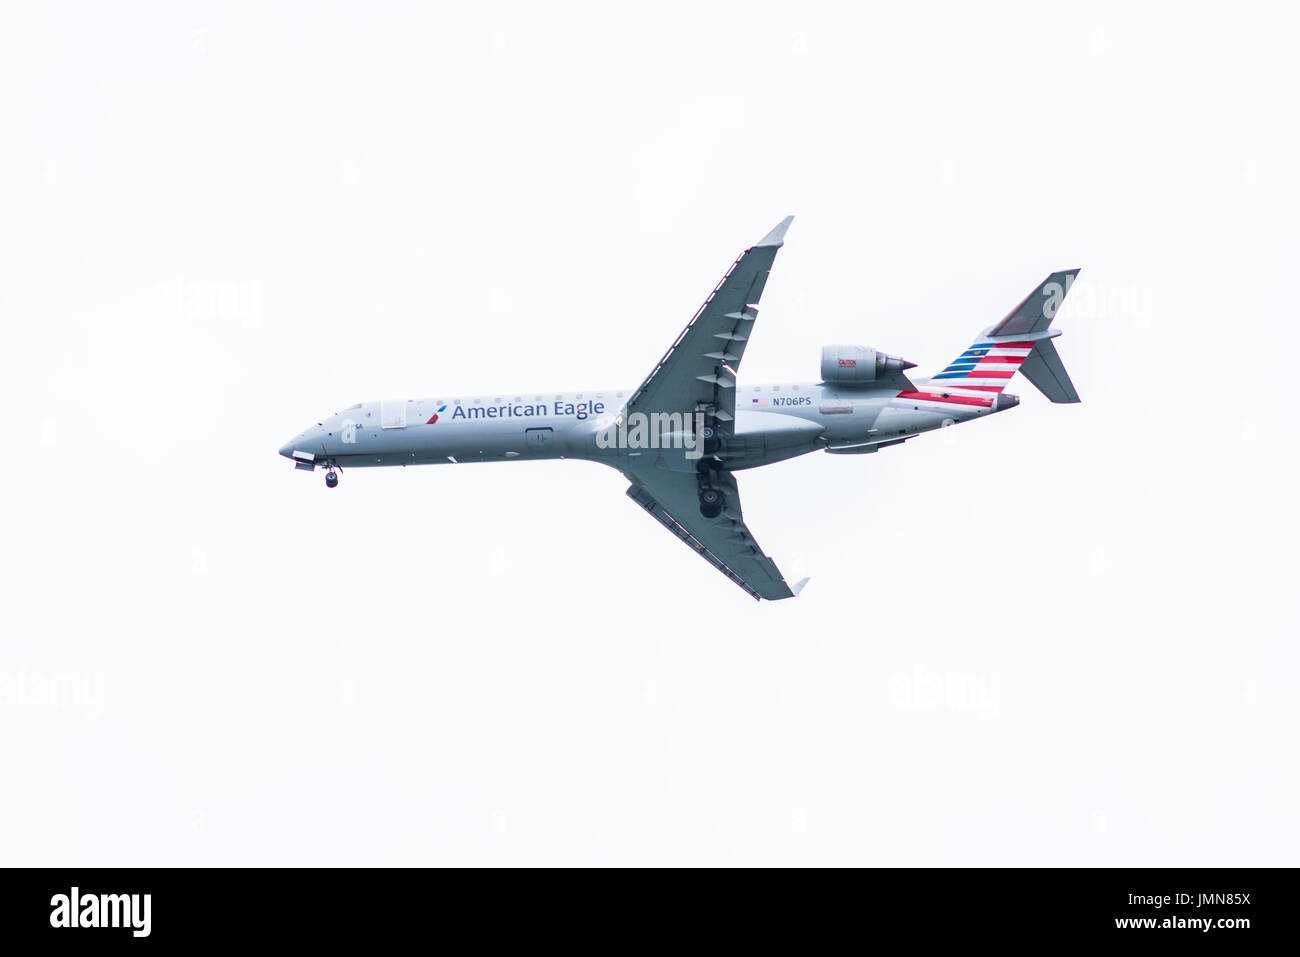 Washington DC, USA - March 17, 2017: Isolated closeup of American Eagle plane landing with cloudy sky - Stock Image